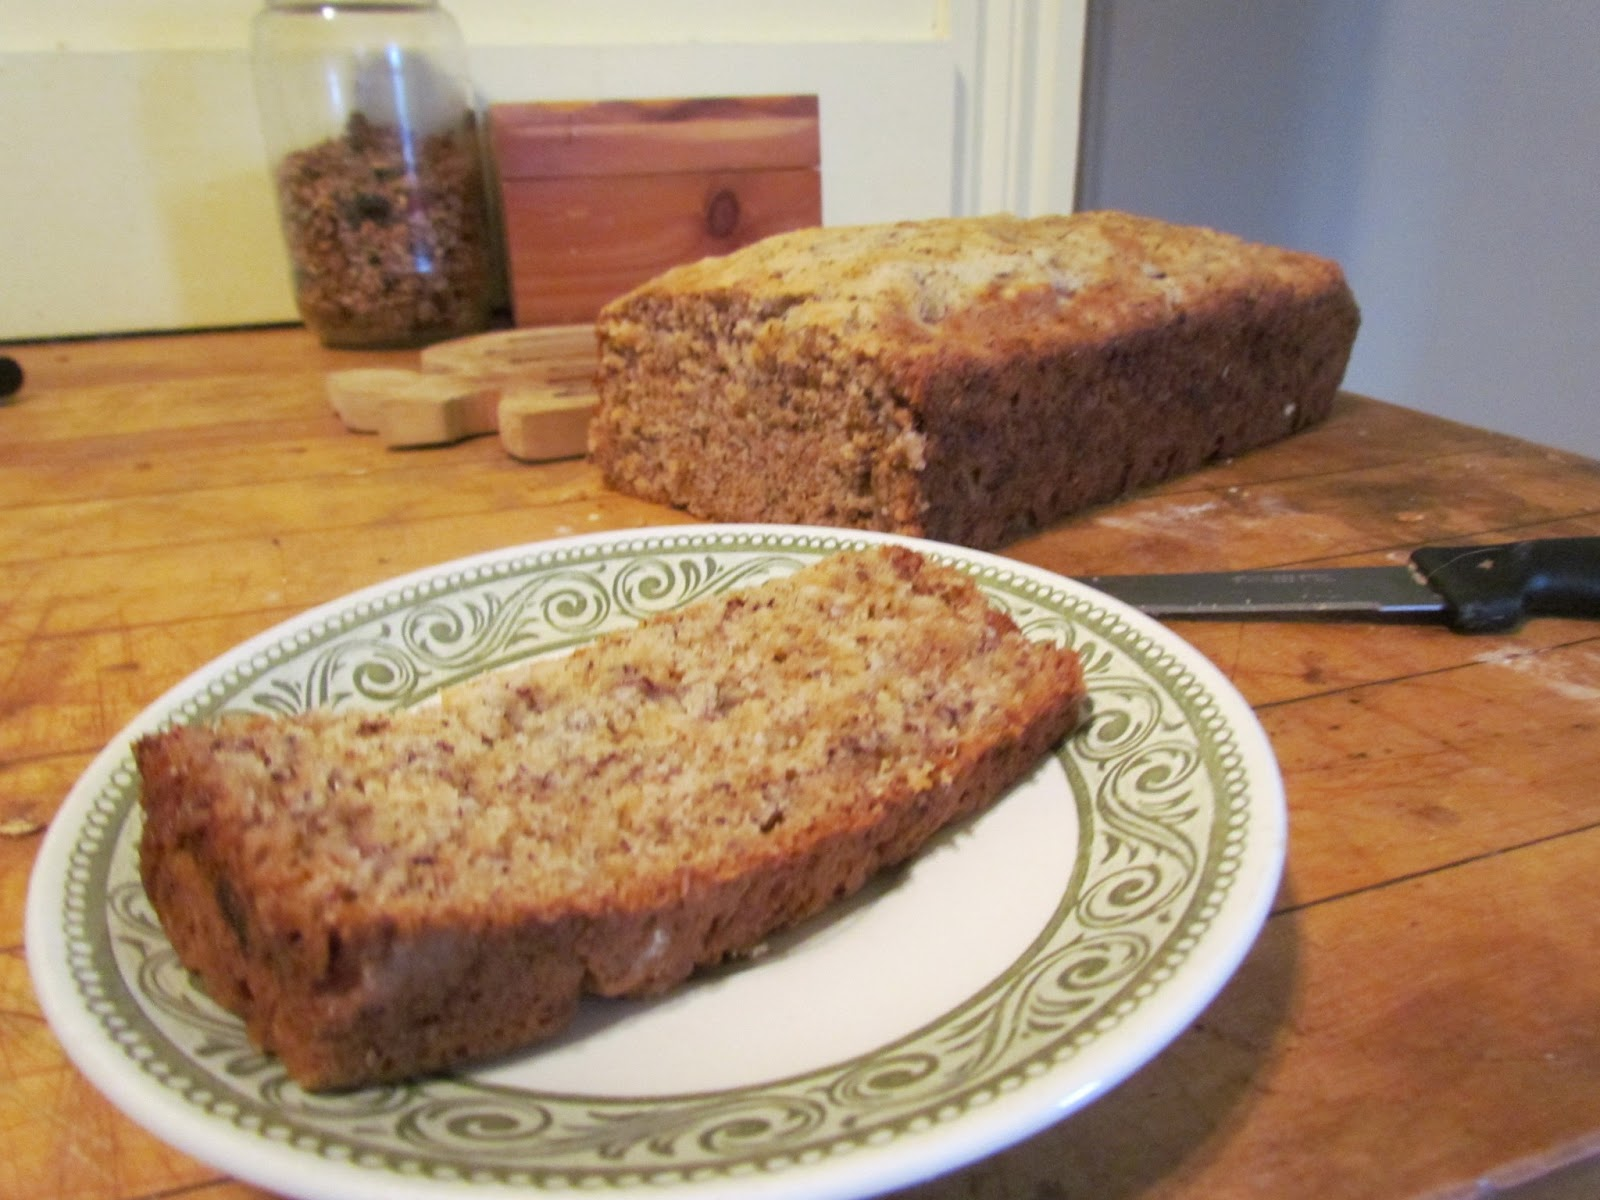 Banana Bread Never Lasts Long In This House A Full Loaf Will Last Maybe Two Days Before The Boyfriend And I Have Polished Off Every Last Bite